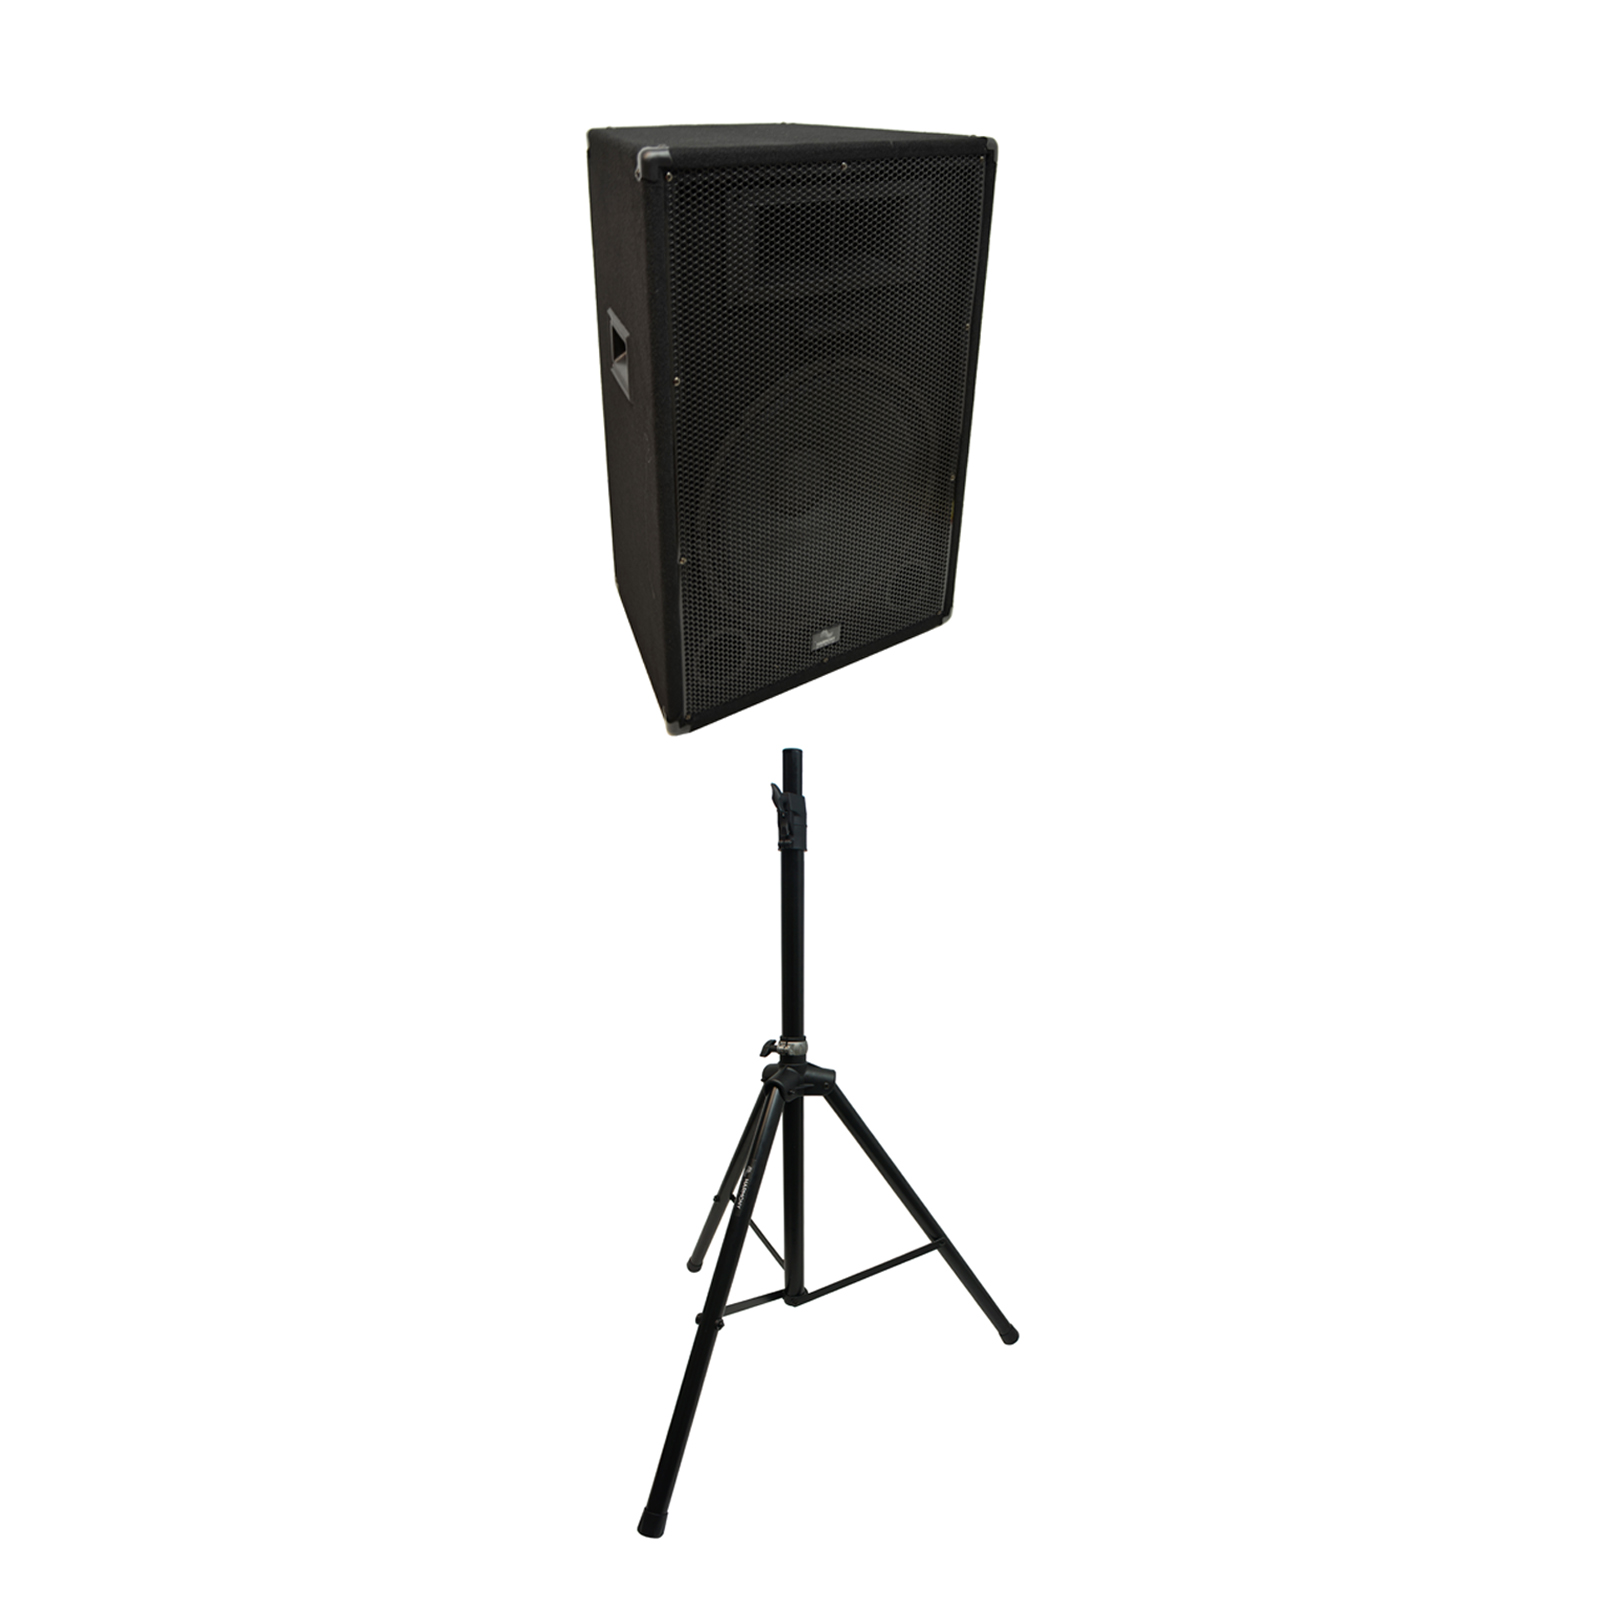 "Harmony Audio Single Tripod Speaker Stand with Harmony Audio Pro DJ Venue Series 15"" Passive 900W PA Speaker 2-Way Cabinet"